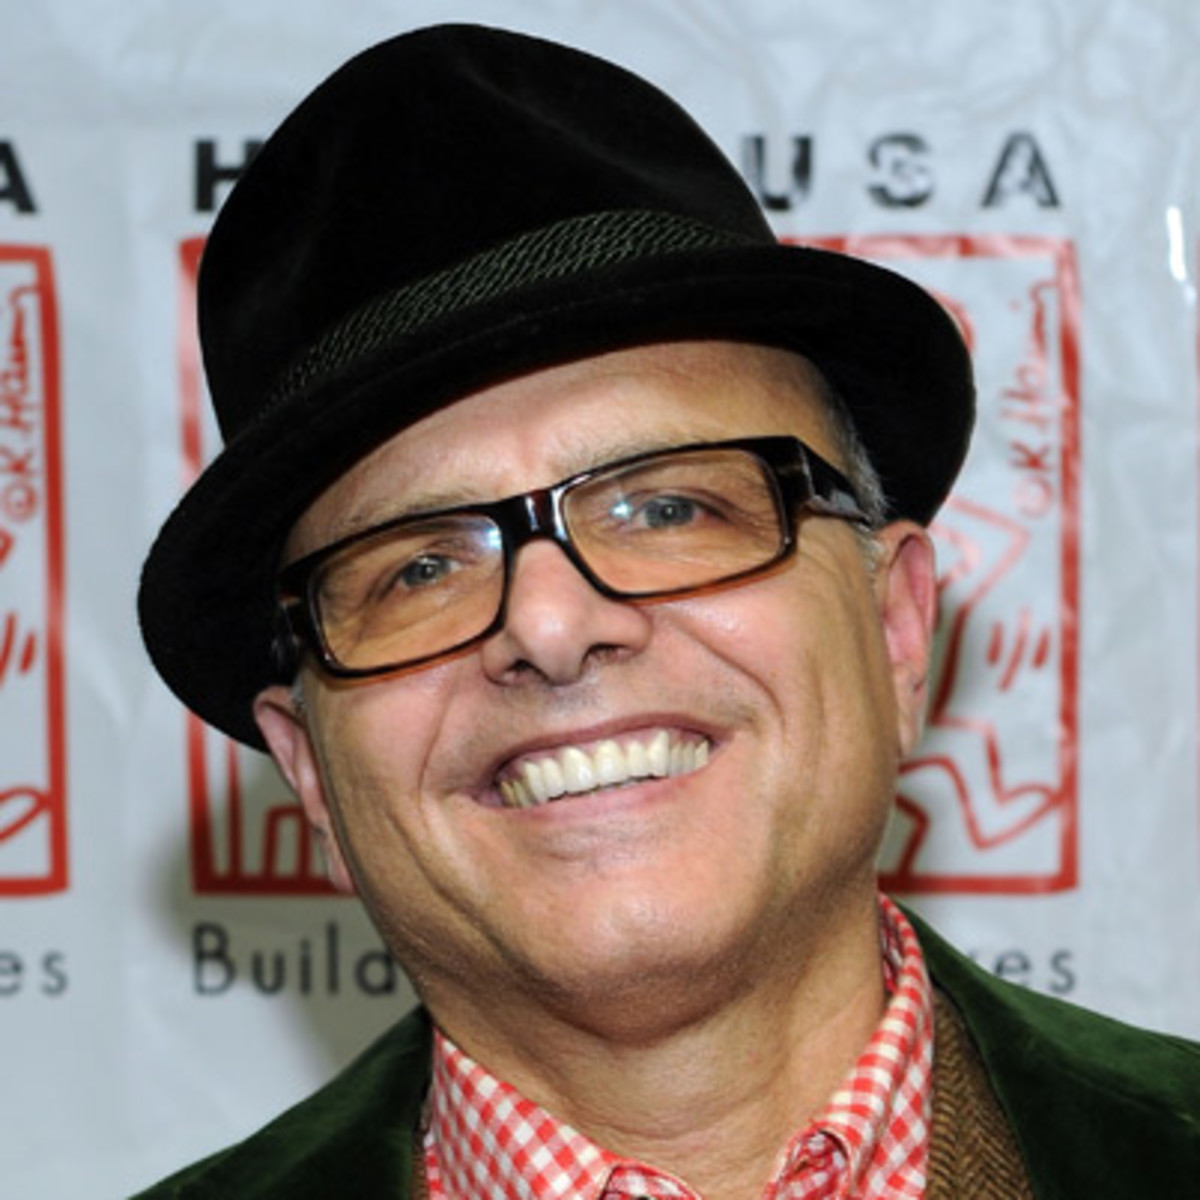 joe pantoliano filmographyjoe pantoliano imdb, joe pantoliano, joe pantoliano sopranos, joe pantoliano matrix, joe pantoliano goonies, joe pantoliano height, joe pantoliano memento, joe pantoliano emmy, joe pantoliano filmography, joe pantoliano gta 3, joe pantoliano net worth, joe pantoliano baby's day out, joe pantoliano sense8, joe pantoliano mash, joe pantoliano hair, joe pantoliano twitter, joe pantoliano bill burr, joe pantoliano wife